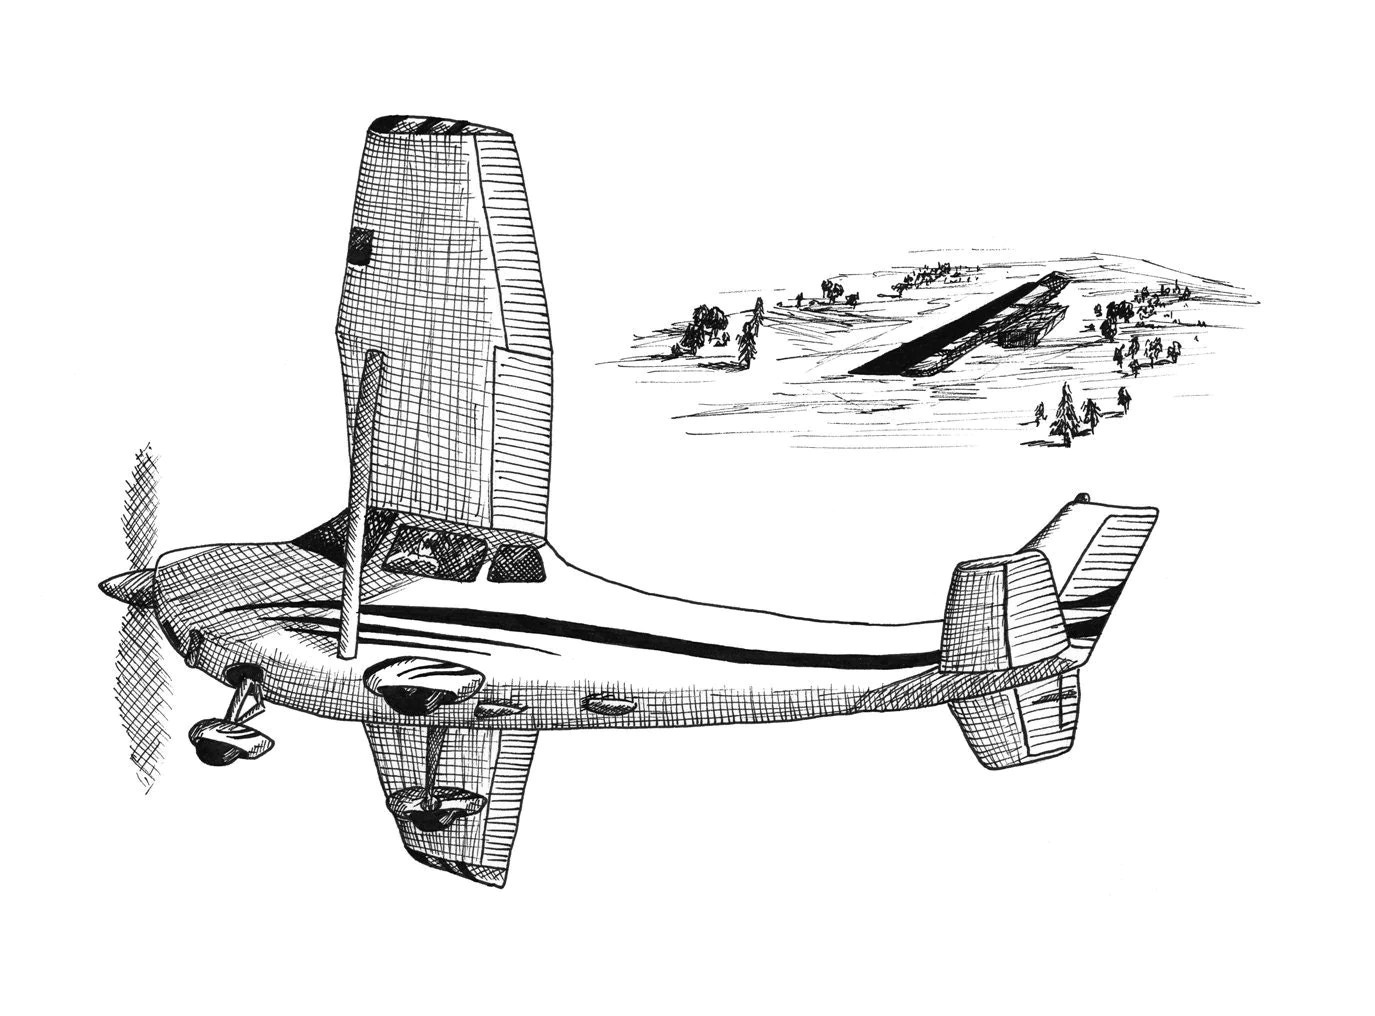 Family Tie Downs Aviation Airplane Drawing 5x7 Print By